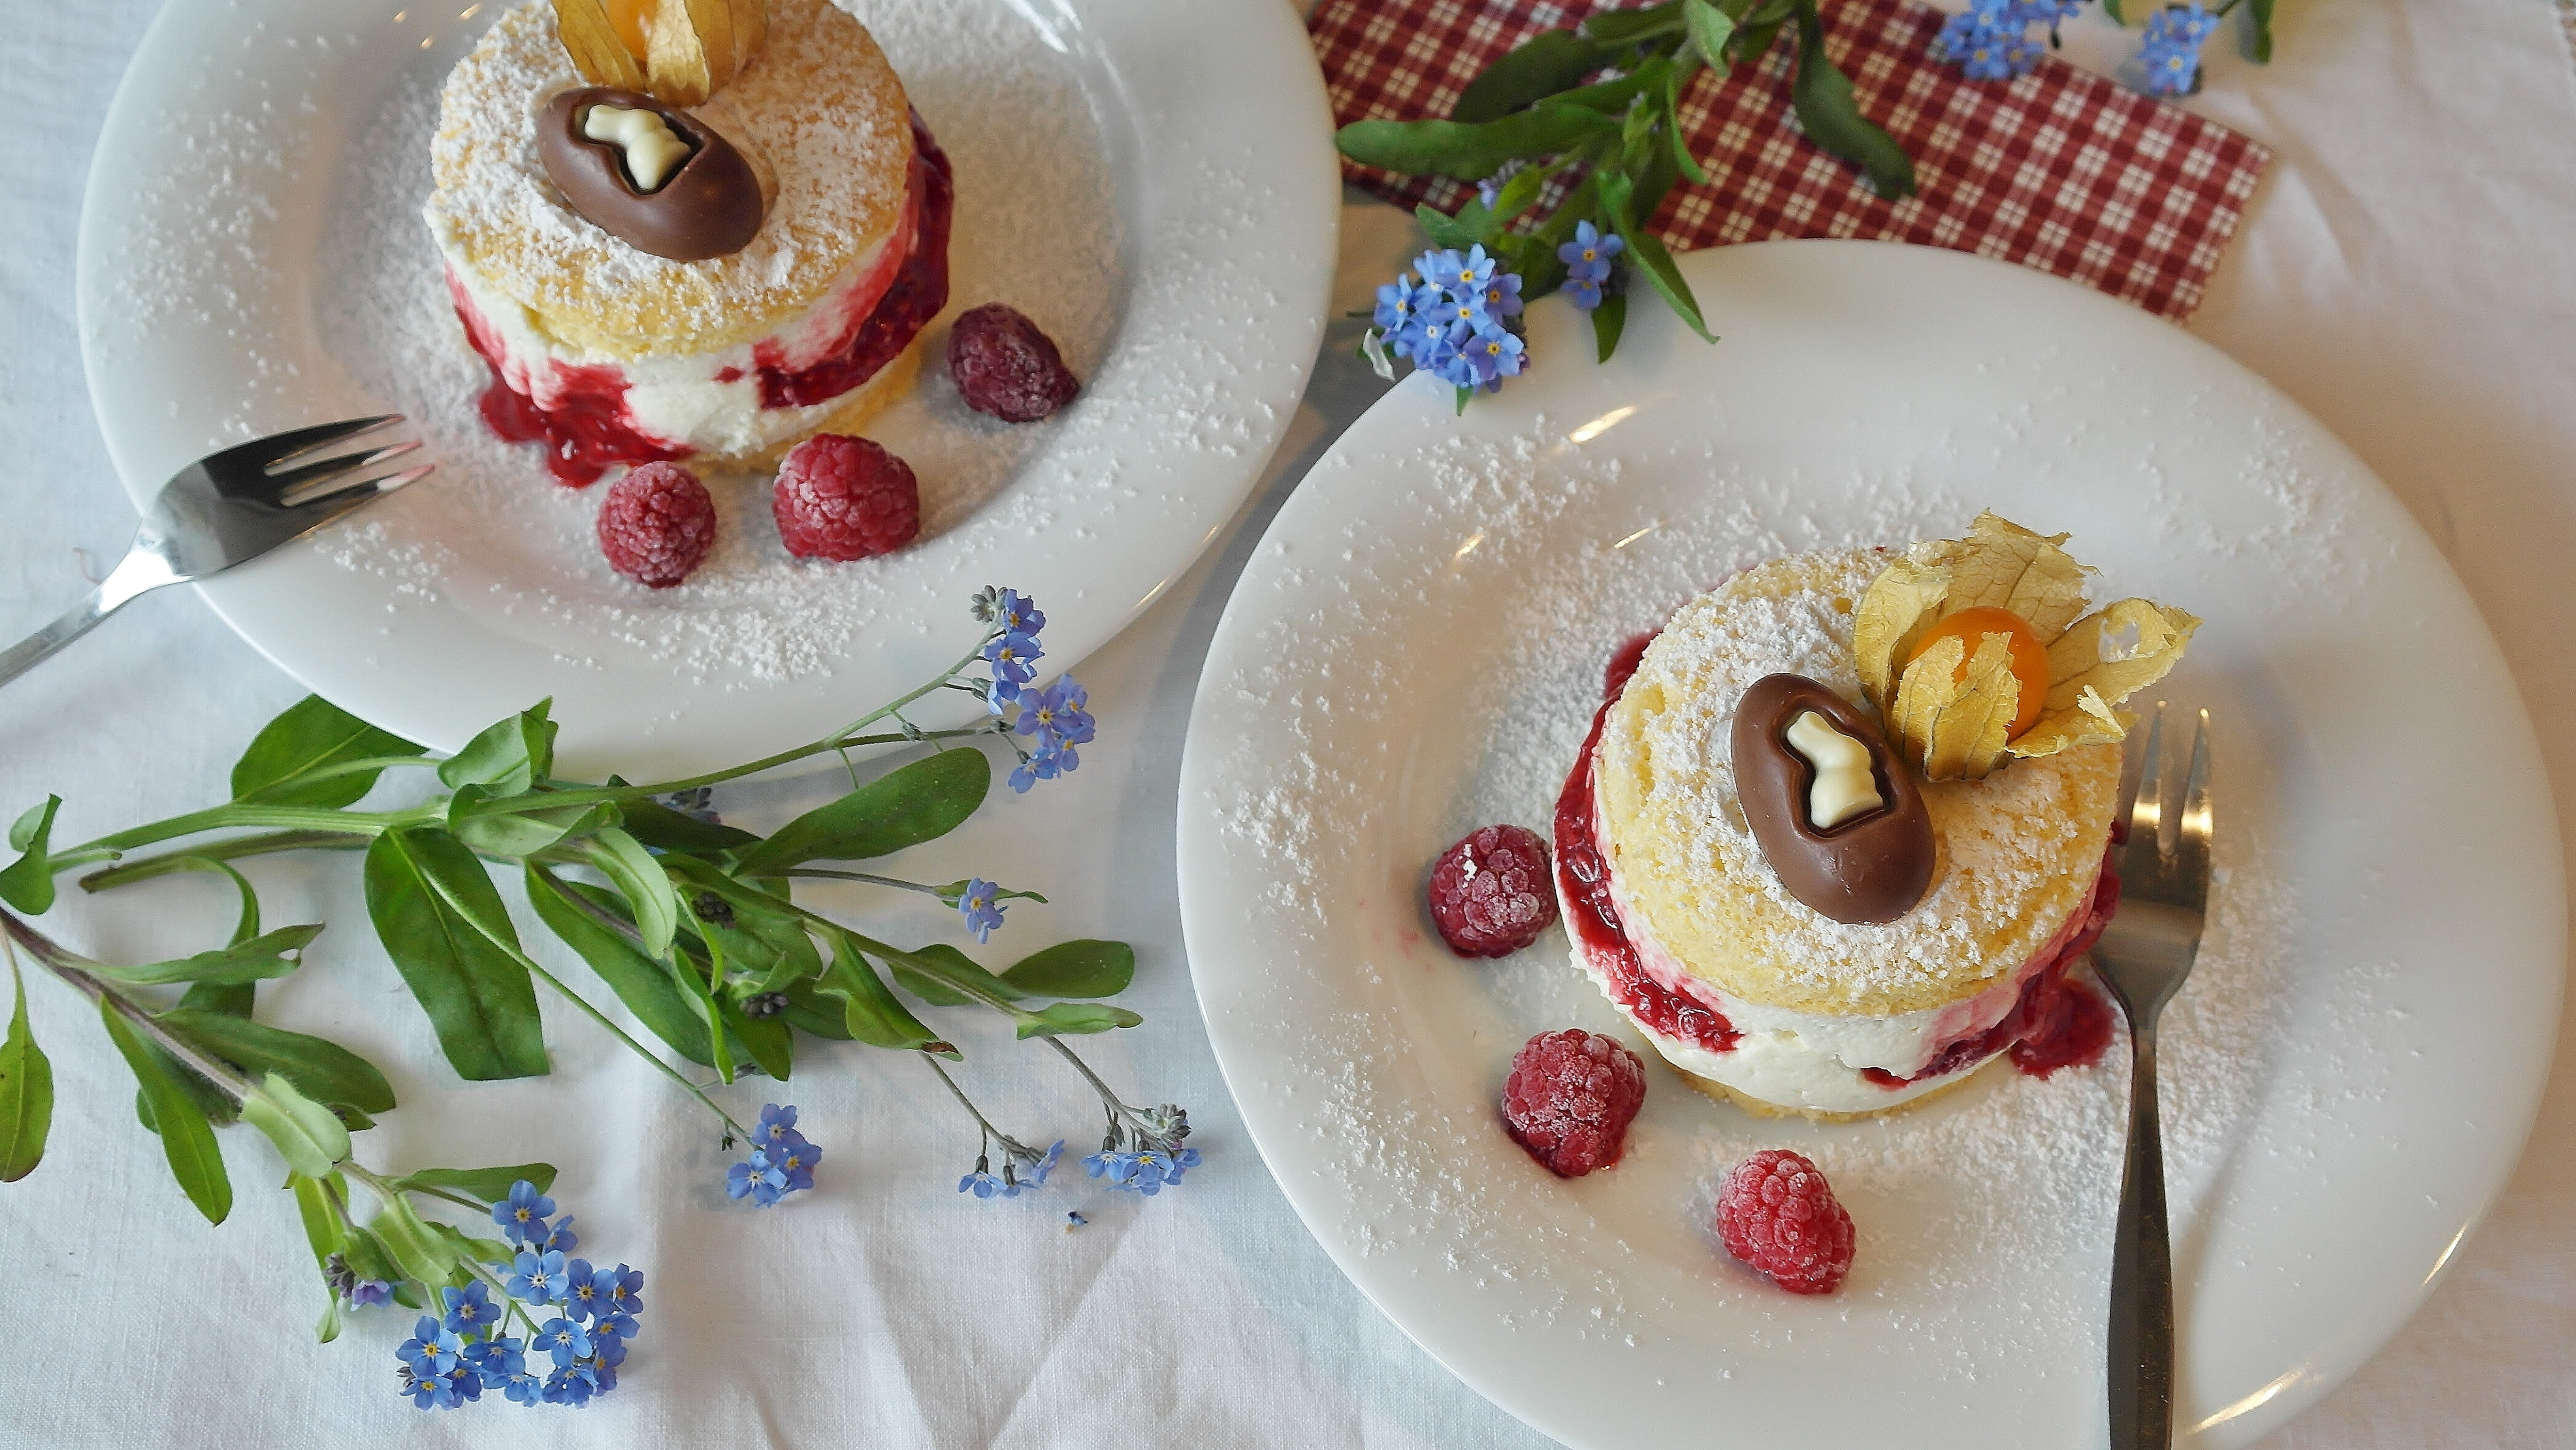 Two Strawberry Cakes on Plates